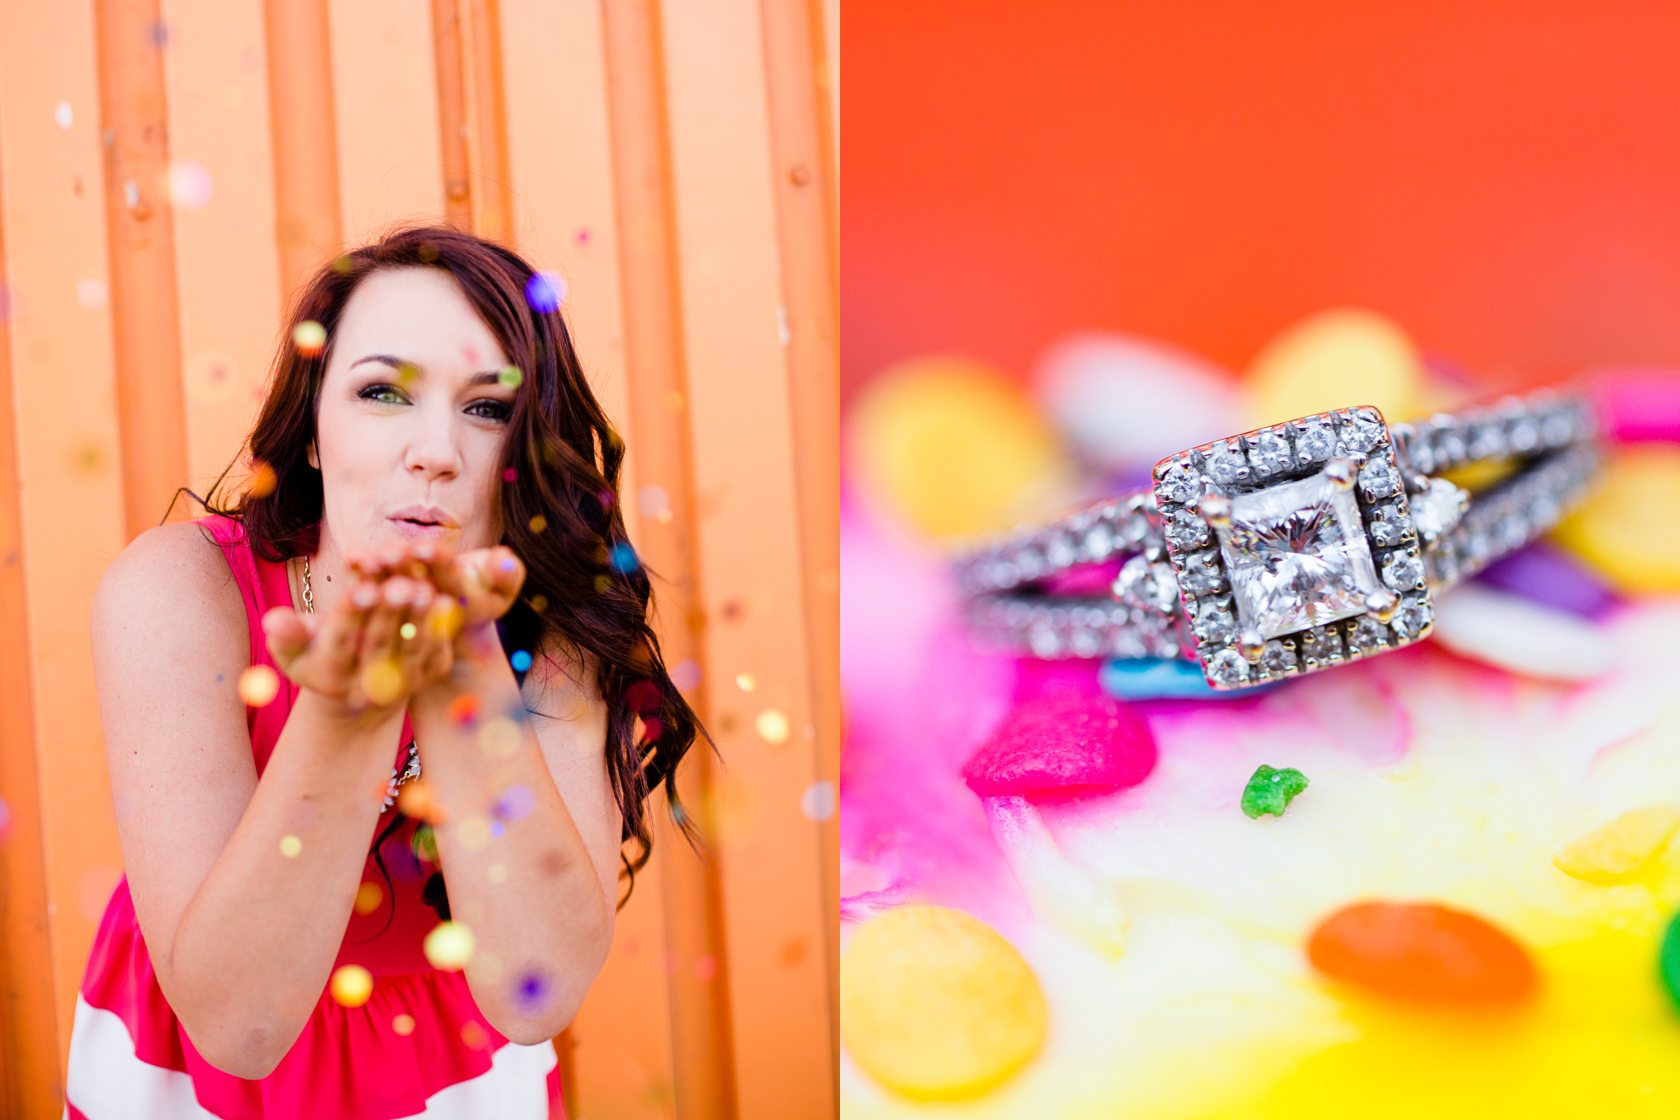 Colorful_San_Diego_Engagement_02.jpg